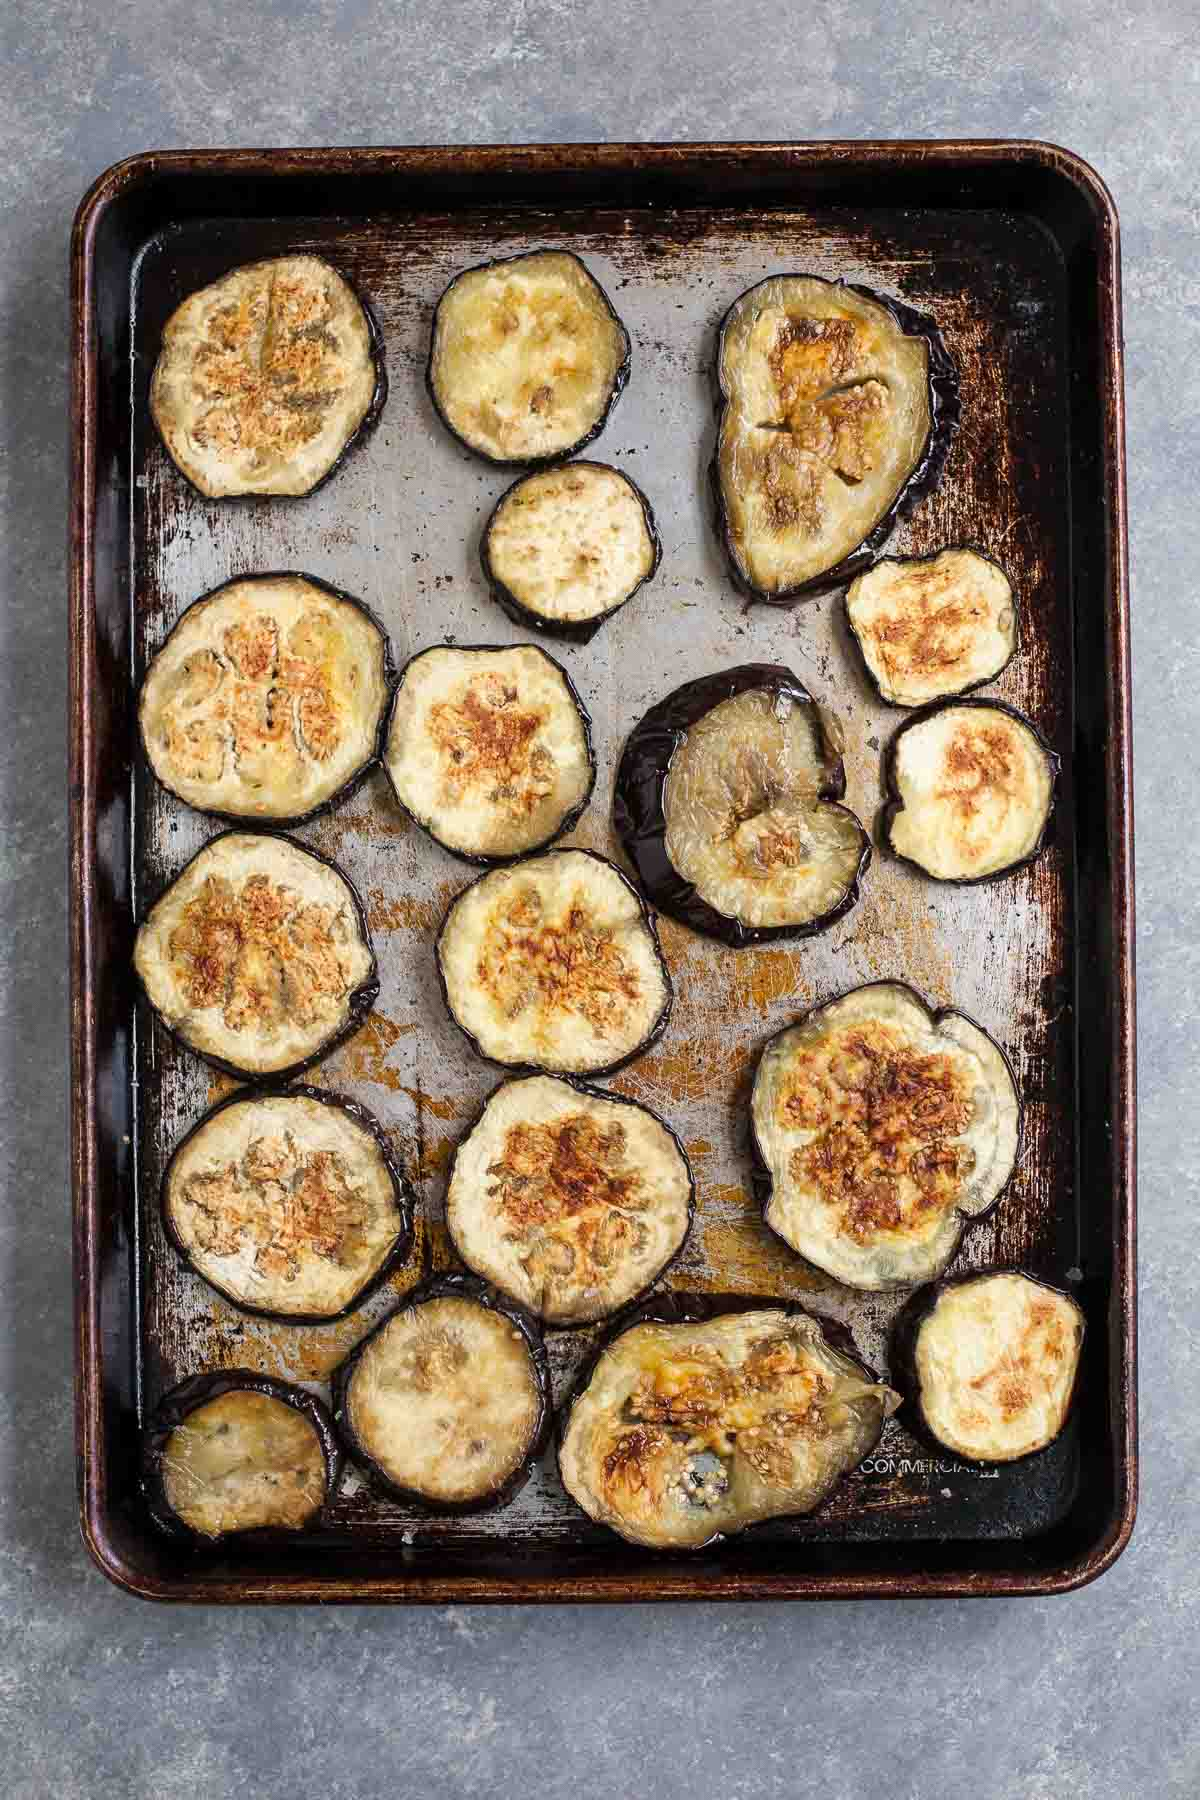 Roasted Eggplant for Baba Ganoush with Spiced Lamb & Mint